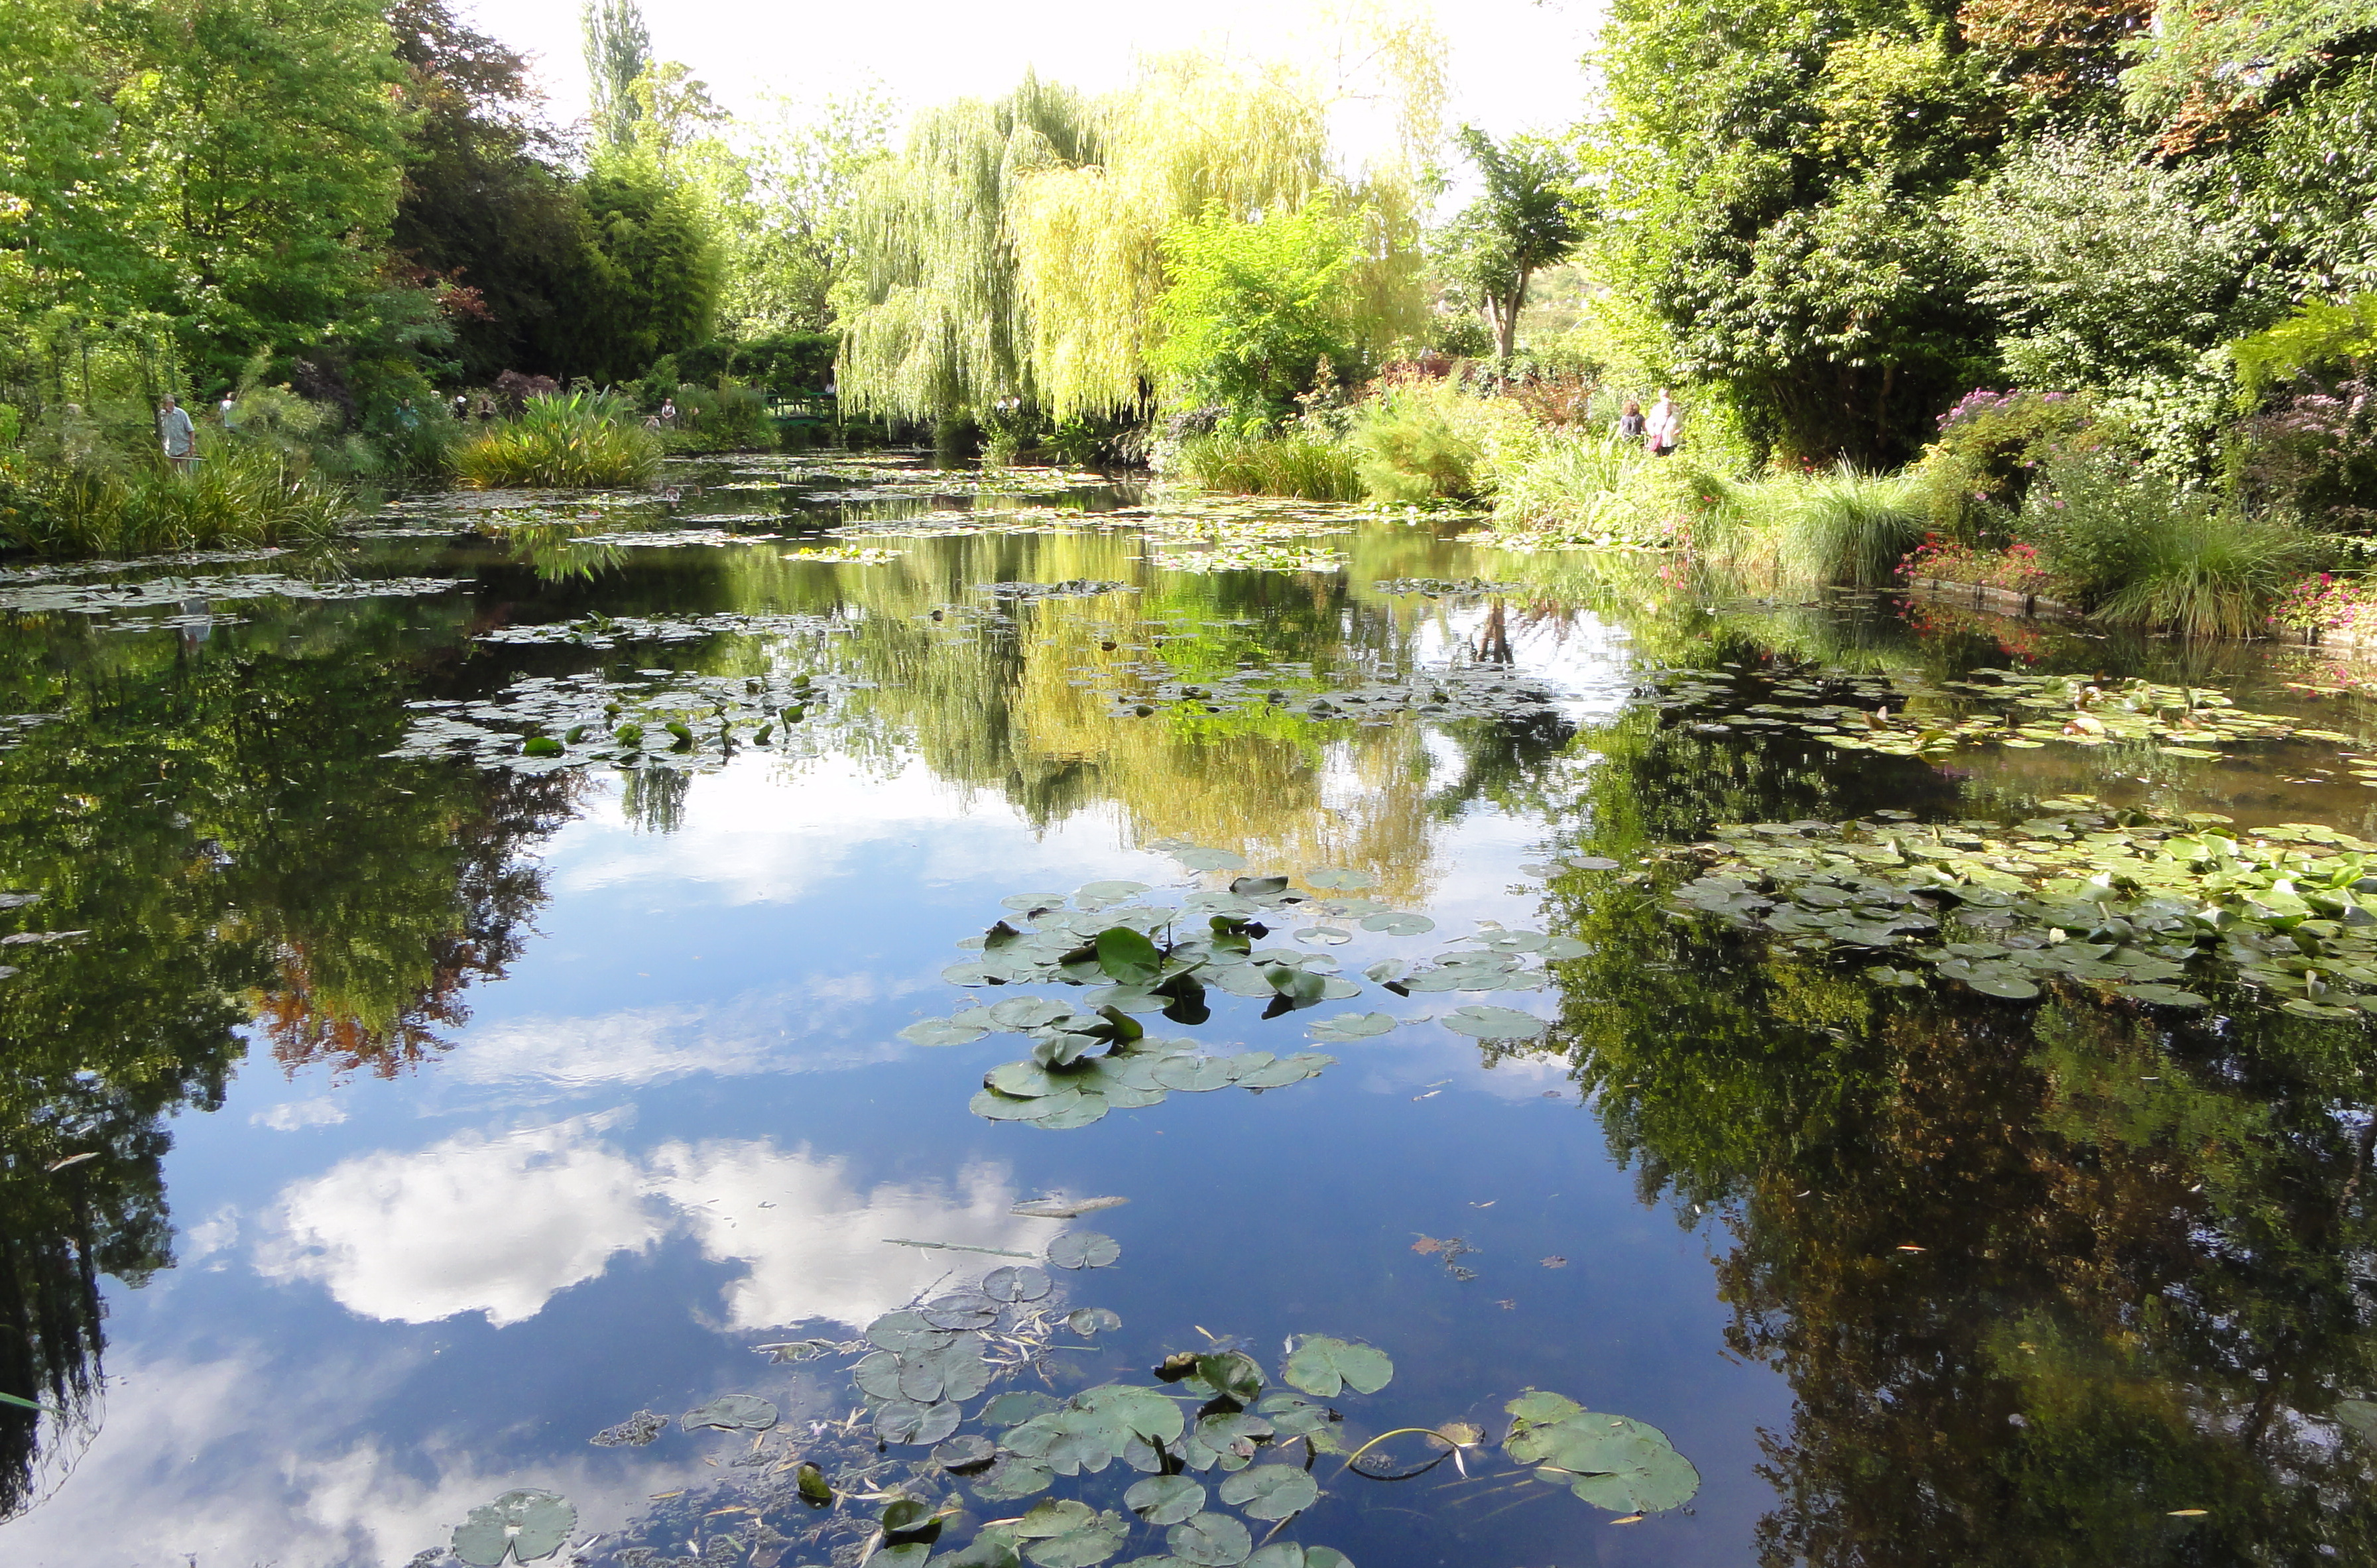 File:Giverny Claude Monet\'s Garden.JPG - Wikimedia Commons